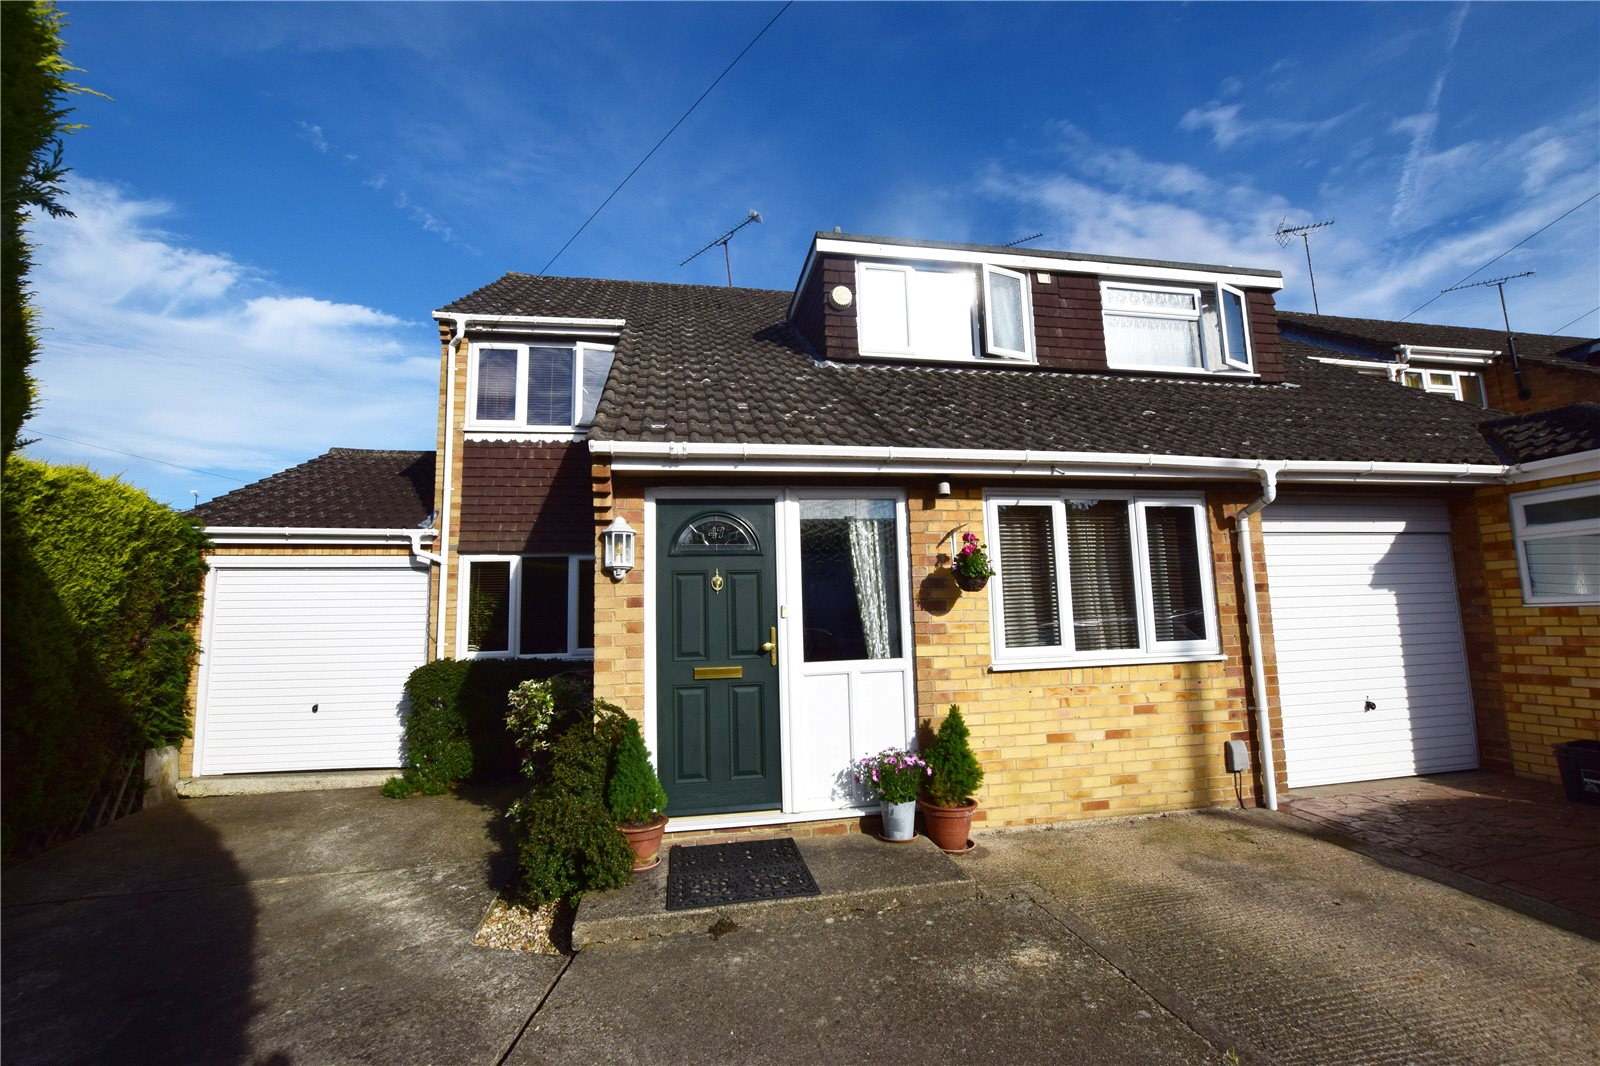 3 Bedrooms End Of Terrace House for sale in Reynards Close, Winnersh, Wokingham, Berkshire, RG41